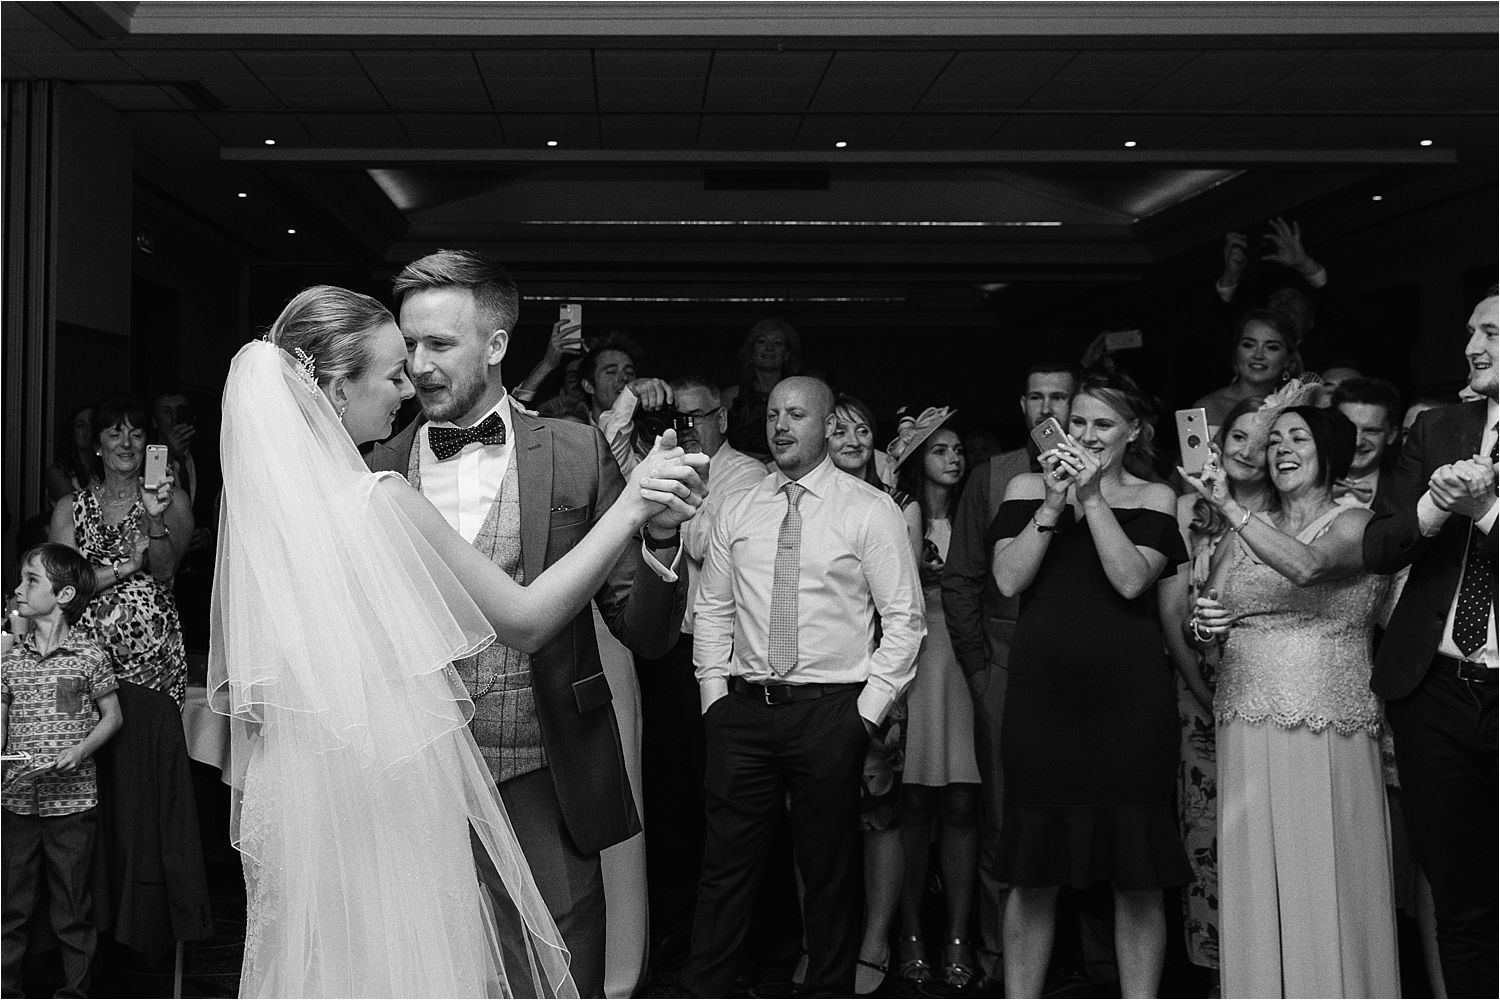 First dance for bride and groom at their Lake District wedding